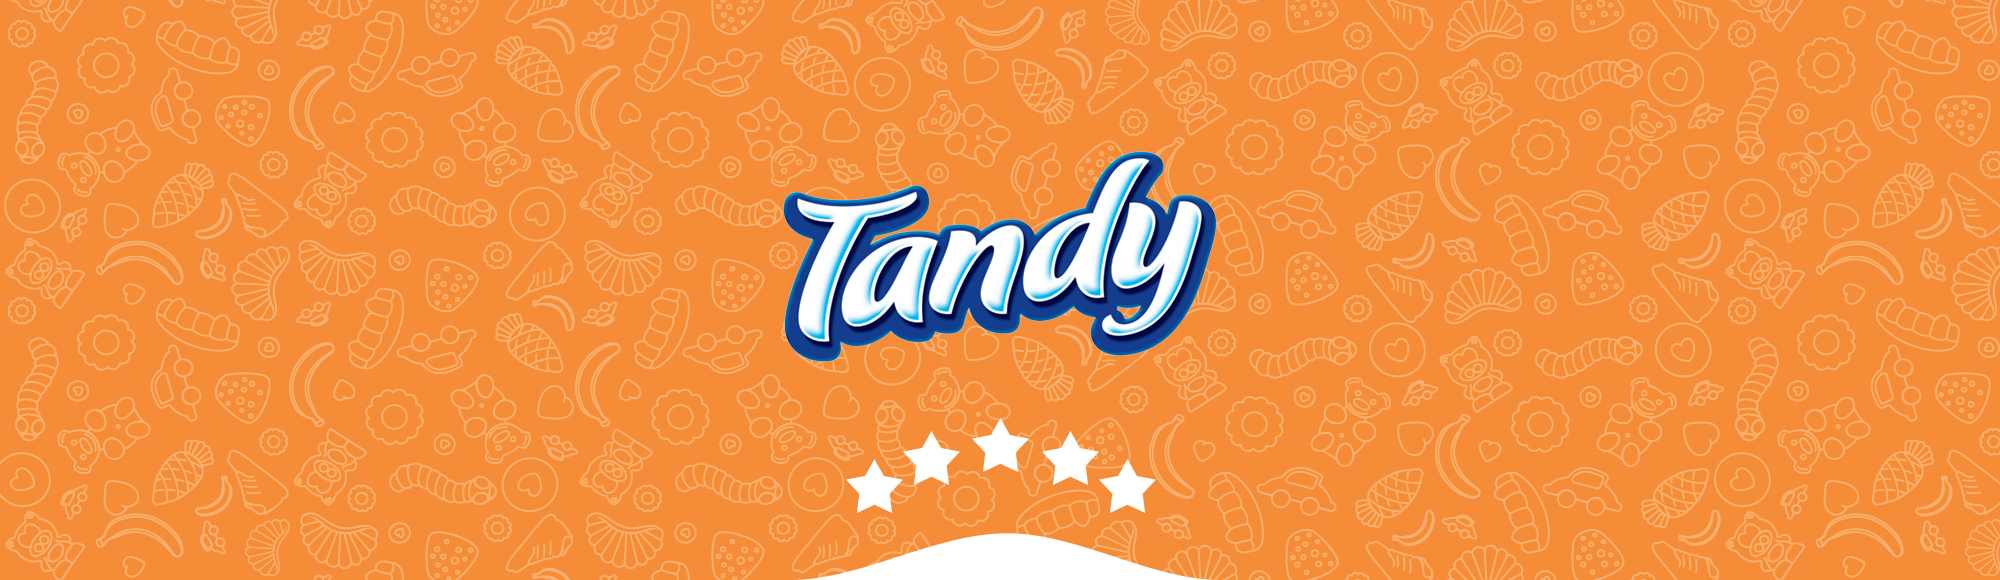 Banner Tandy